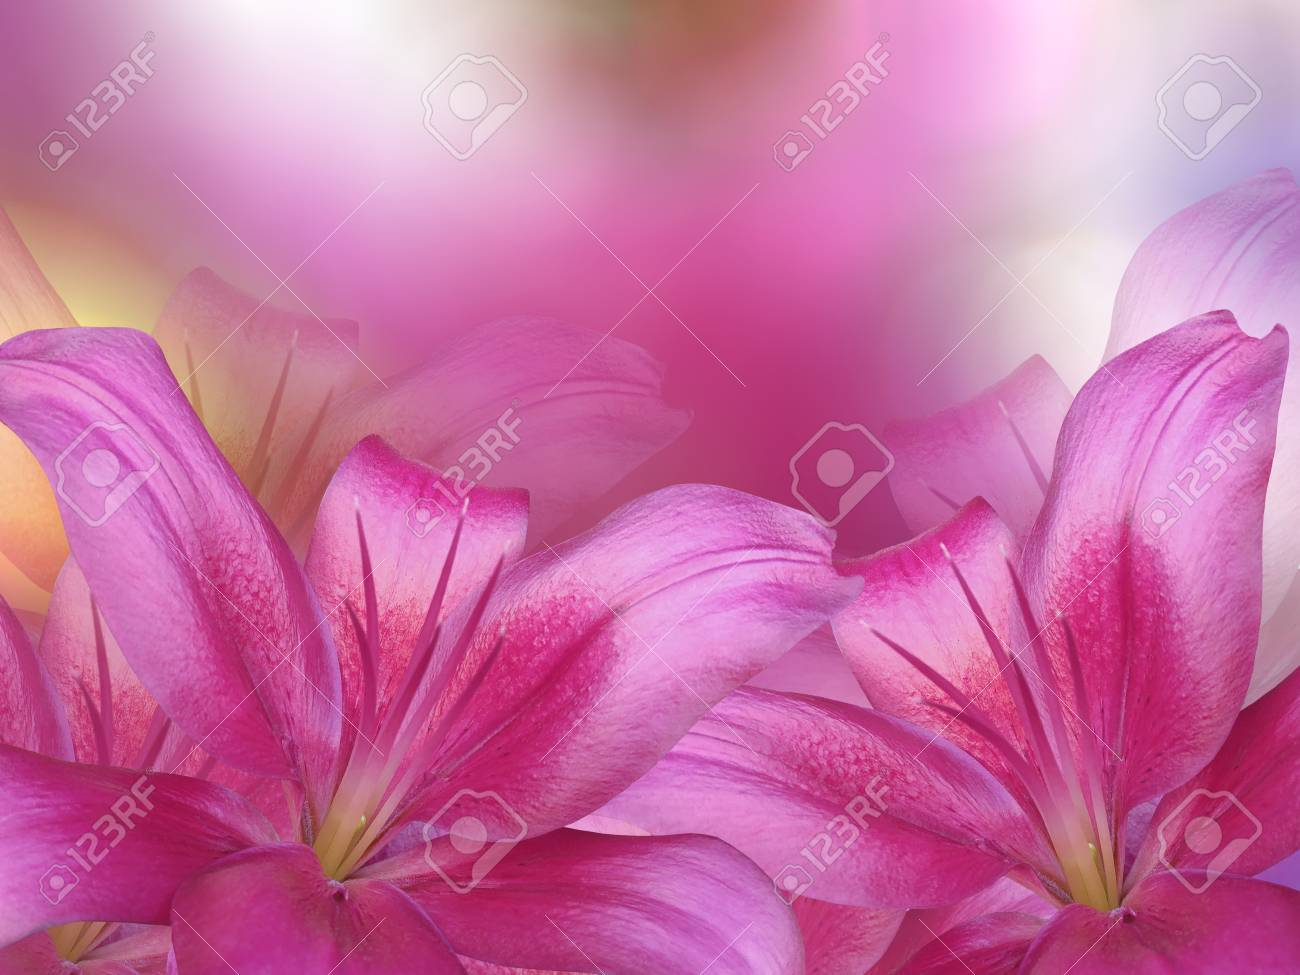 Pink Lilies Flowers On Pink Purple Yellow Blurred Background